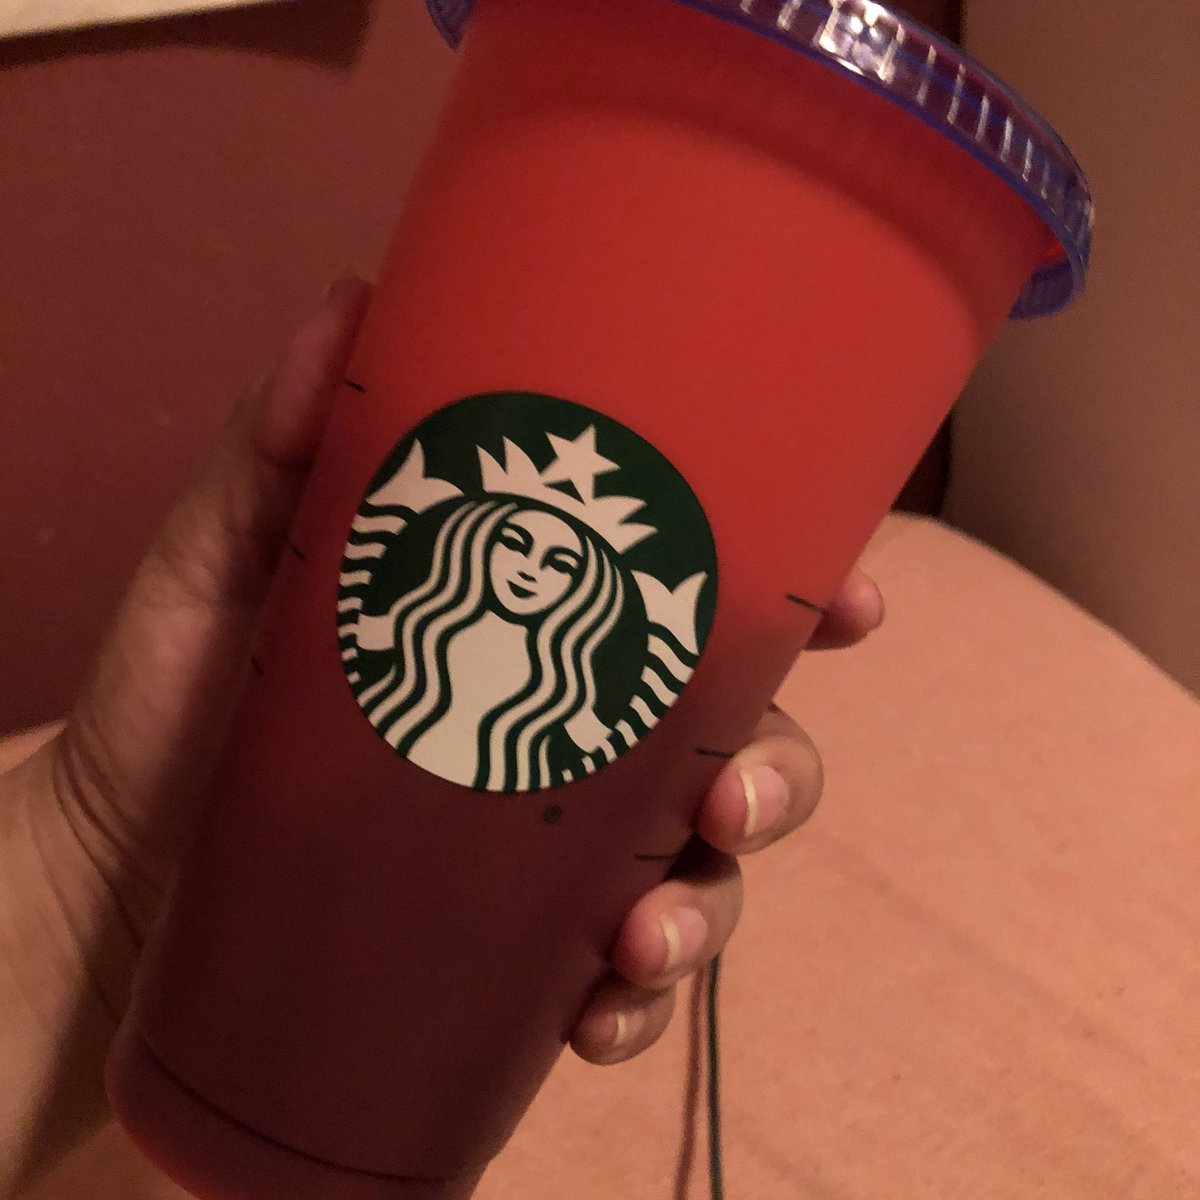 Maybe I'm obsessed with this cup because I never got the Lion King color changing spoons as a child.  #starbucks pic.twitter.com/rhuwAejs2a